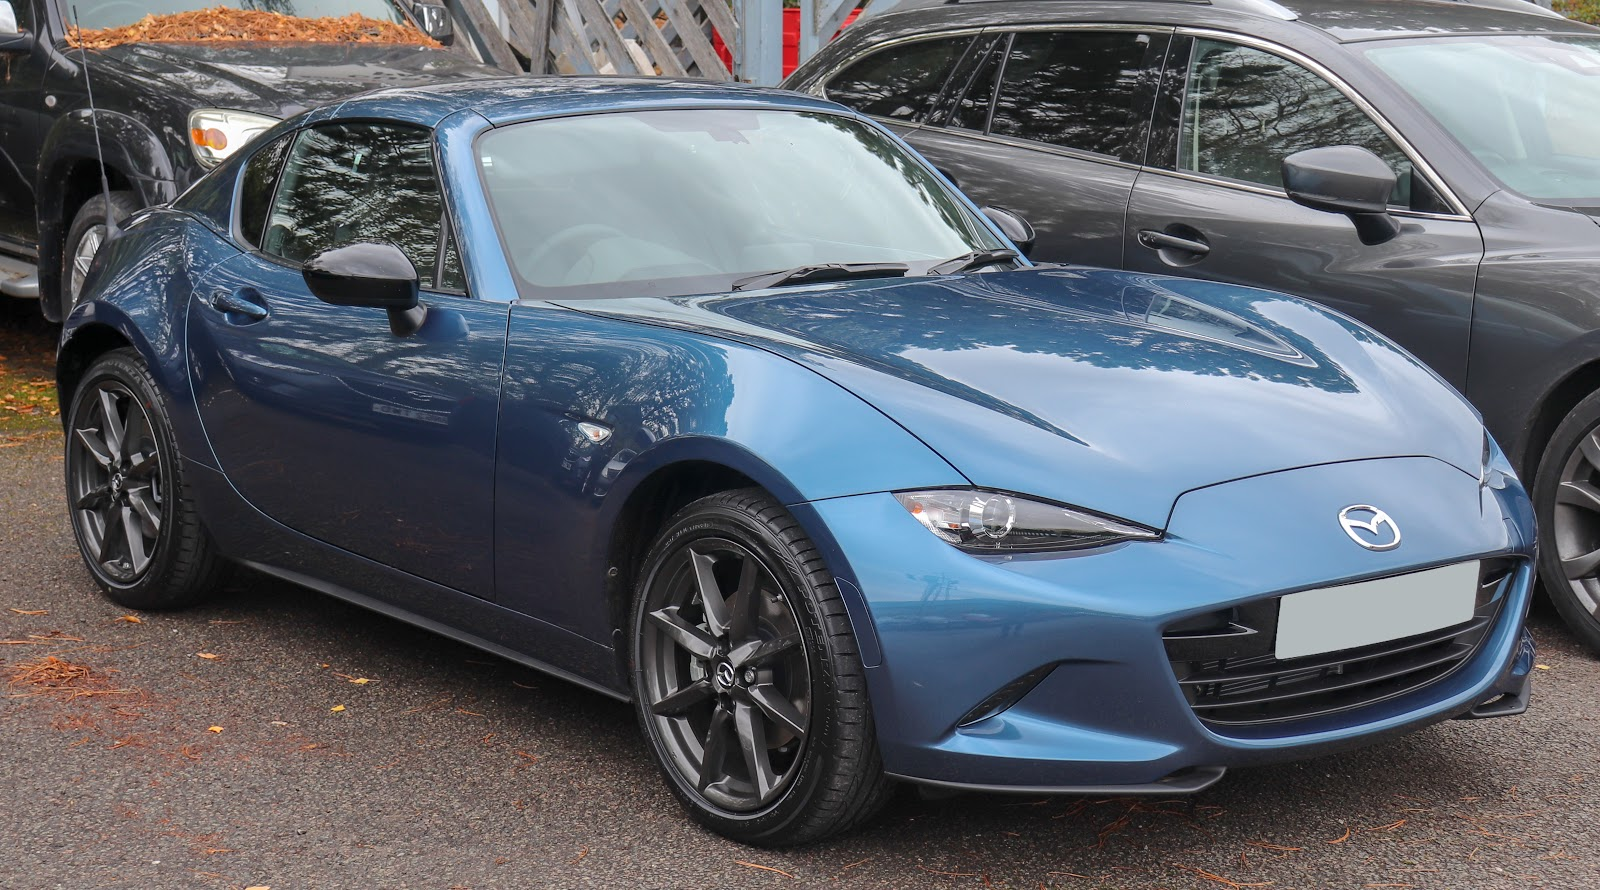 Photo of used Mazda convertible on sales lot